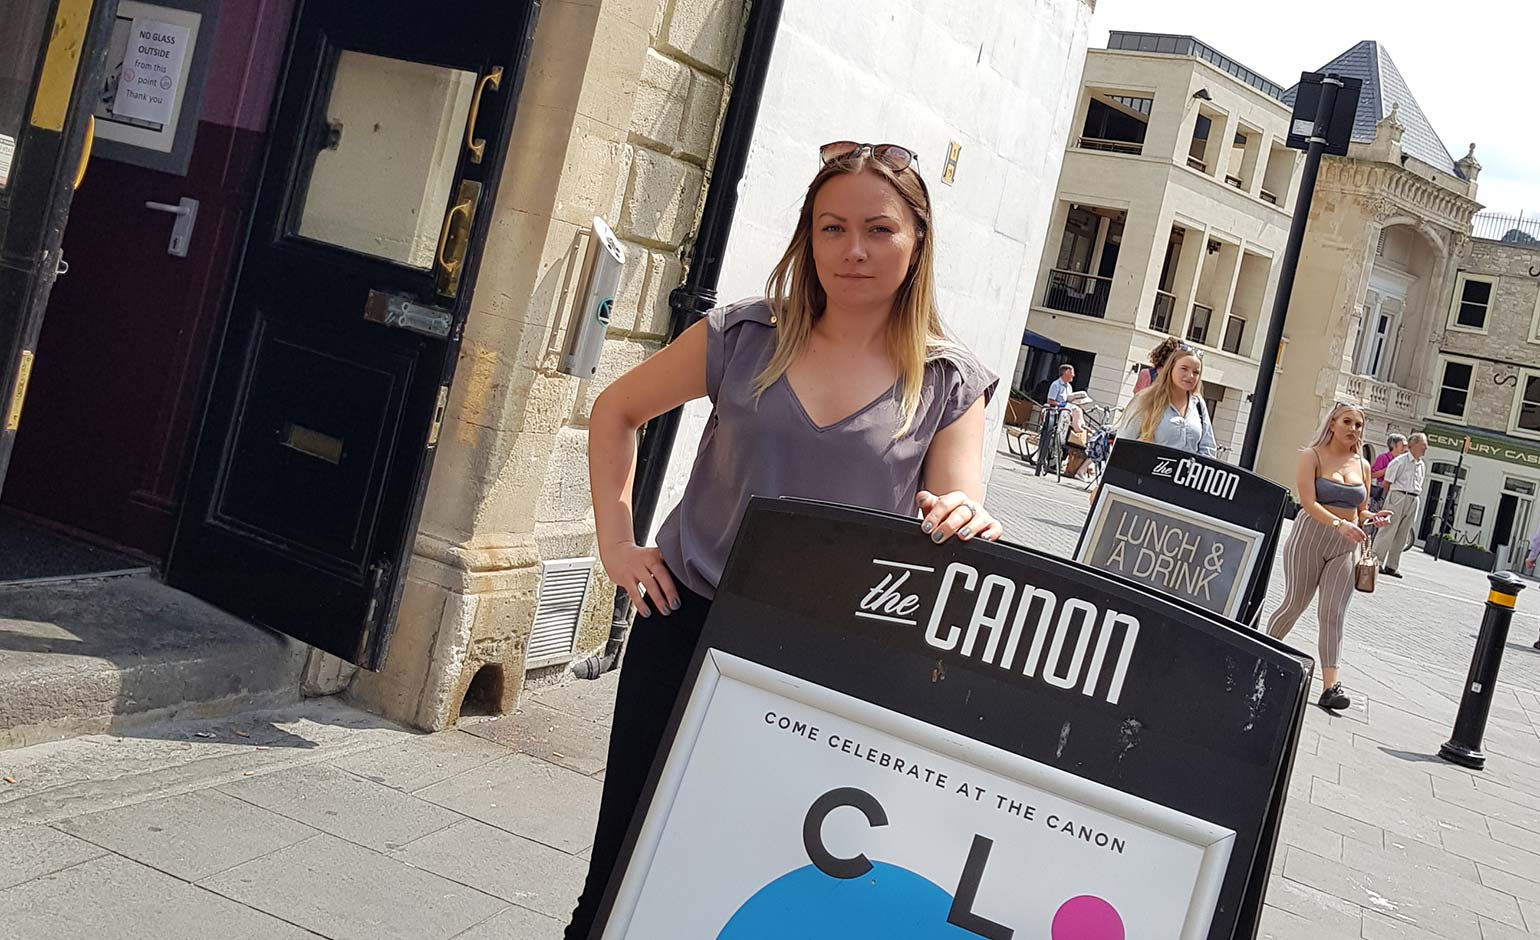 House of Commons reception for manager of The Canon pub in Bath